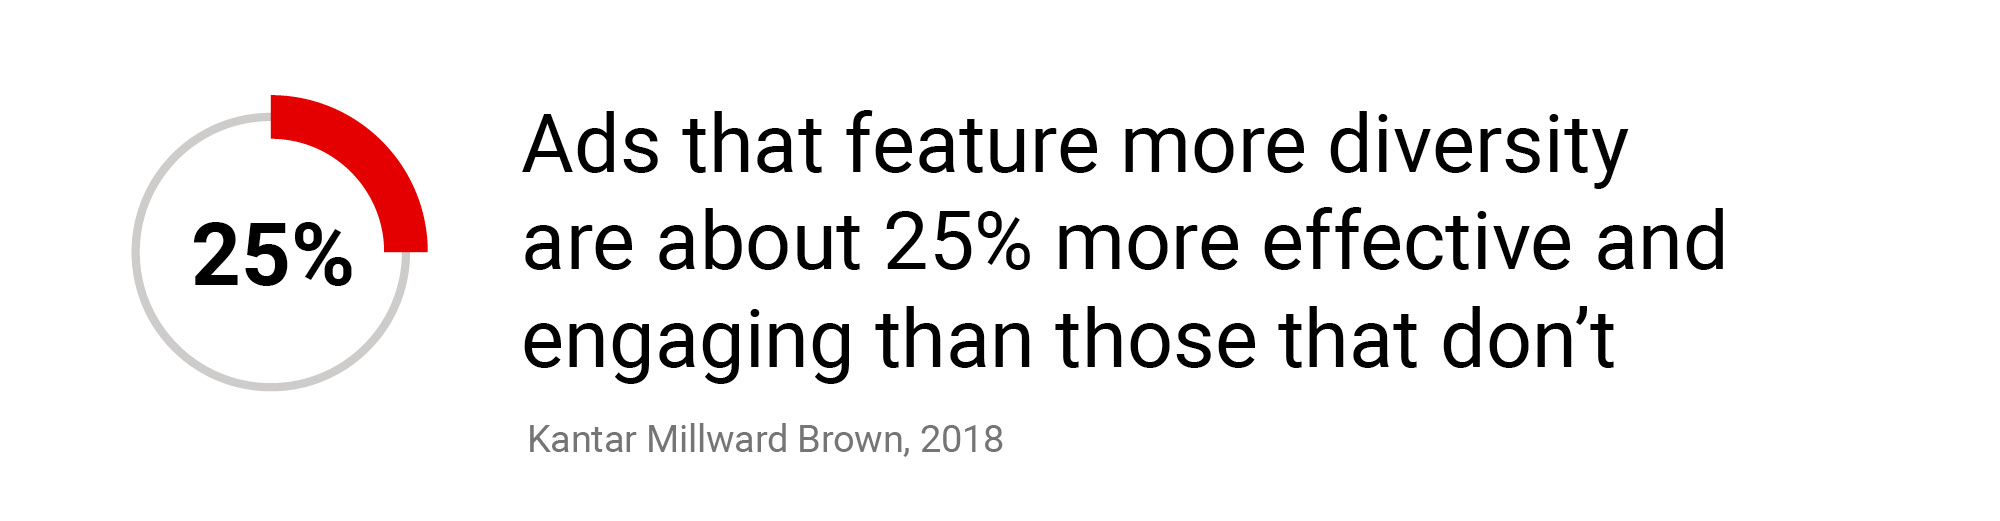 Ads that feature more diversity are about 25% more effective and engaging than those that don't